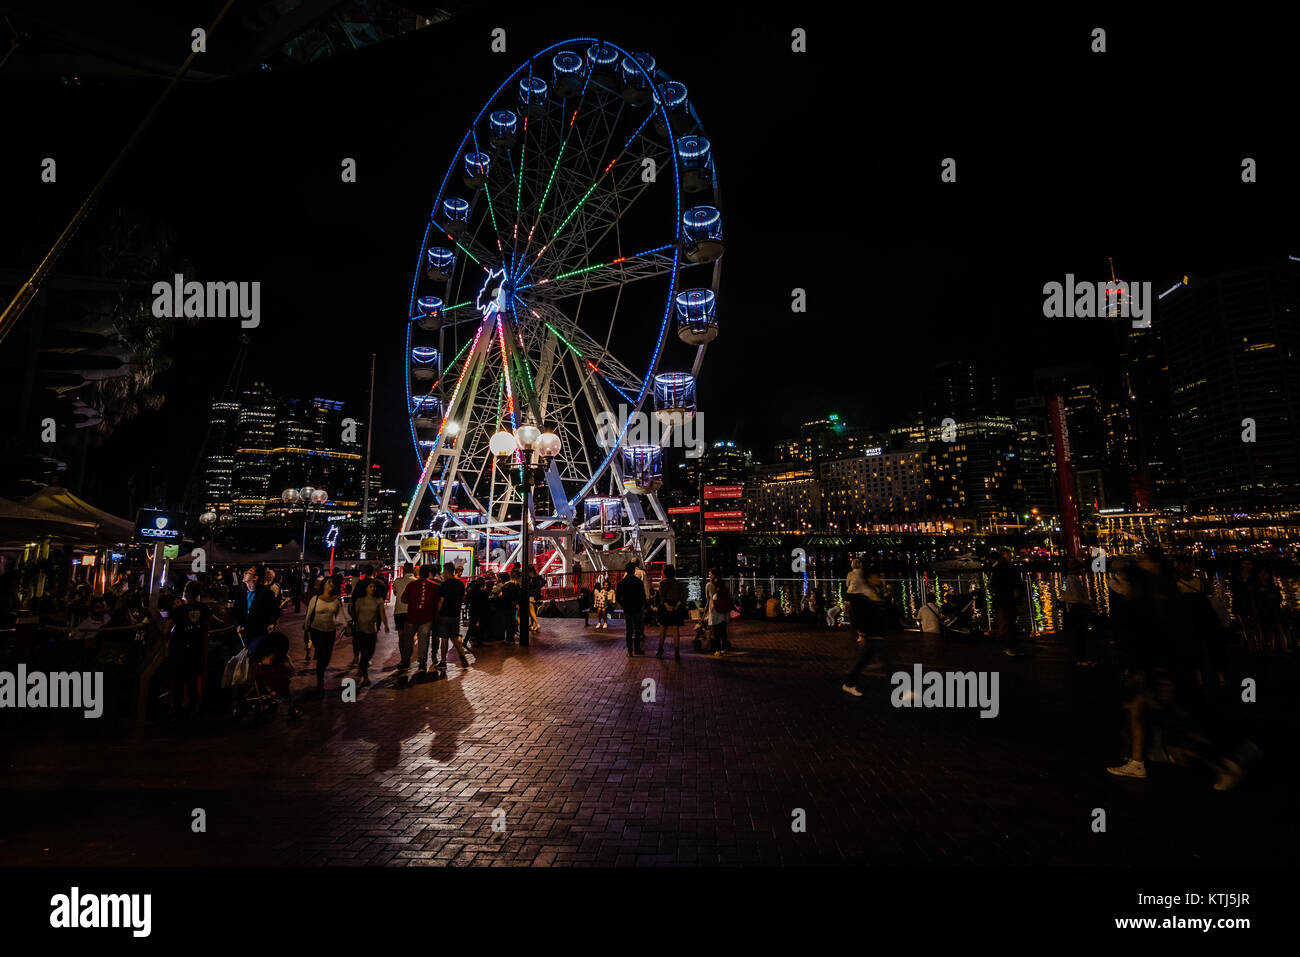 sydney harbourside shopping centre at night - Stock Image